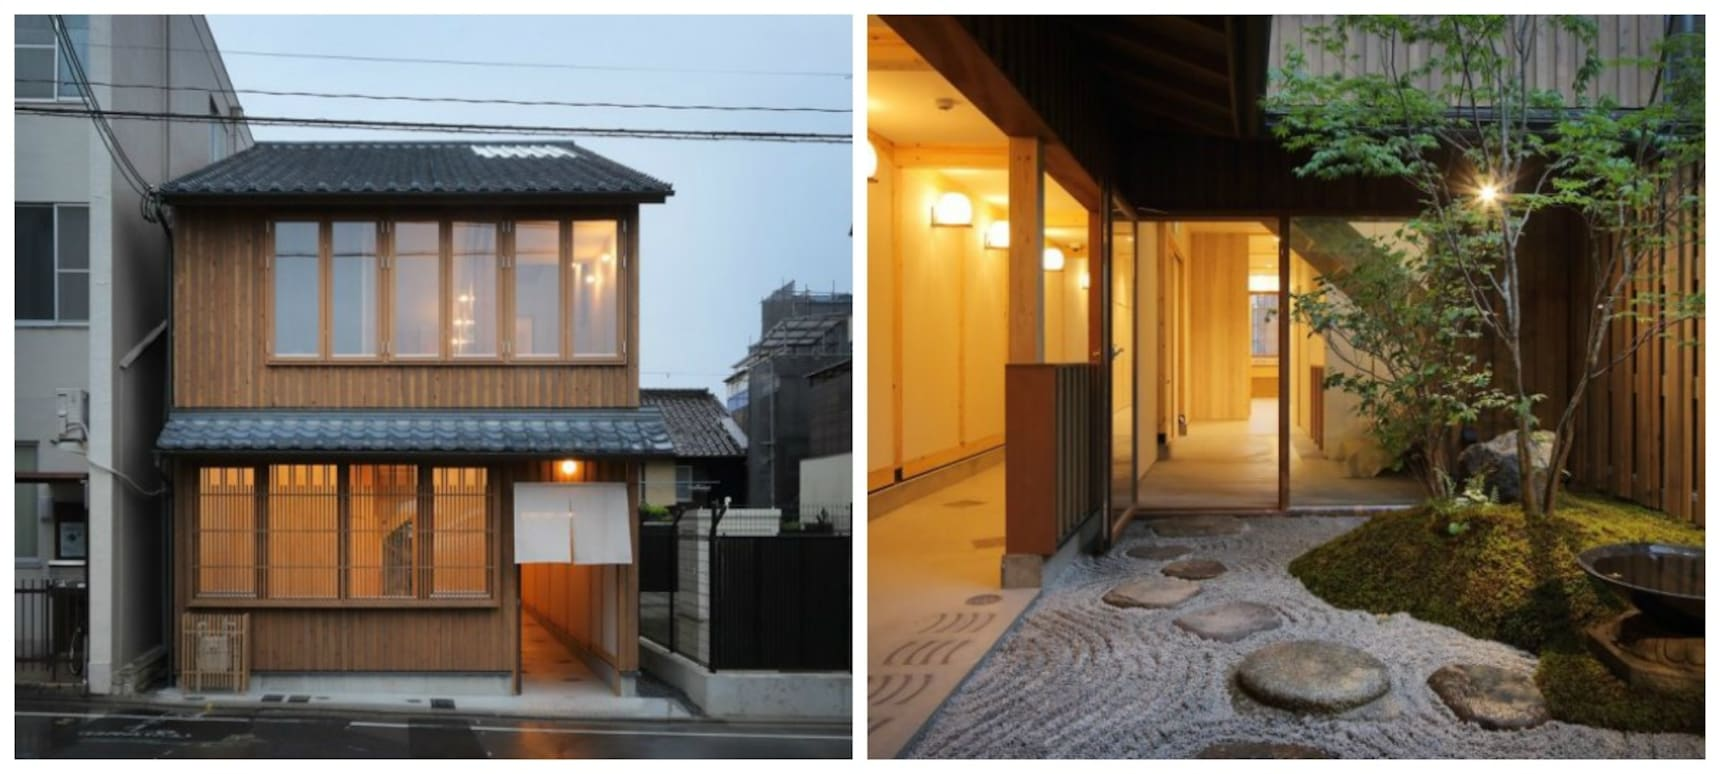 Stay at a Machiya-Style Hostel in Kyoto